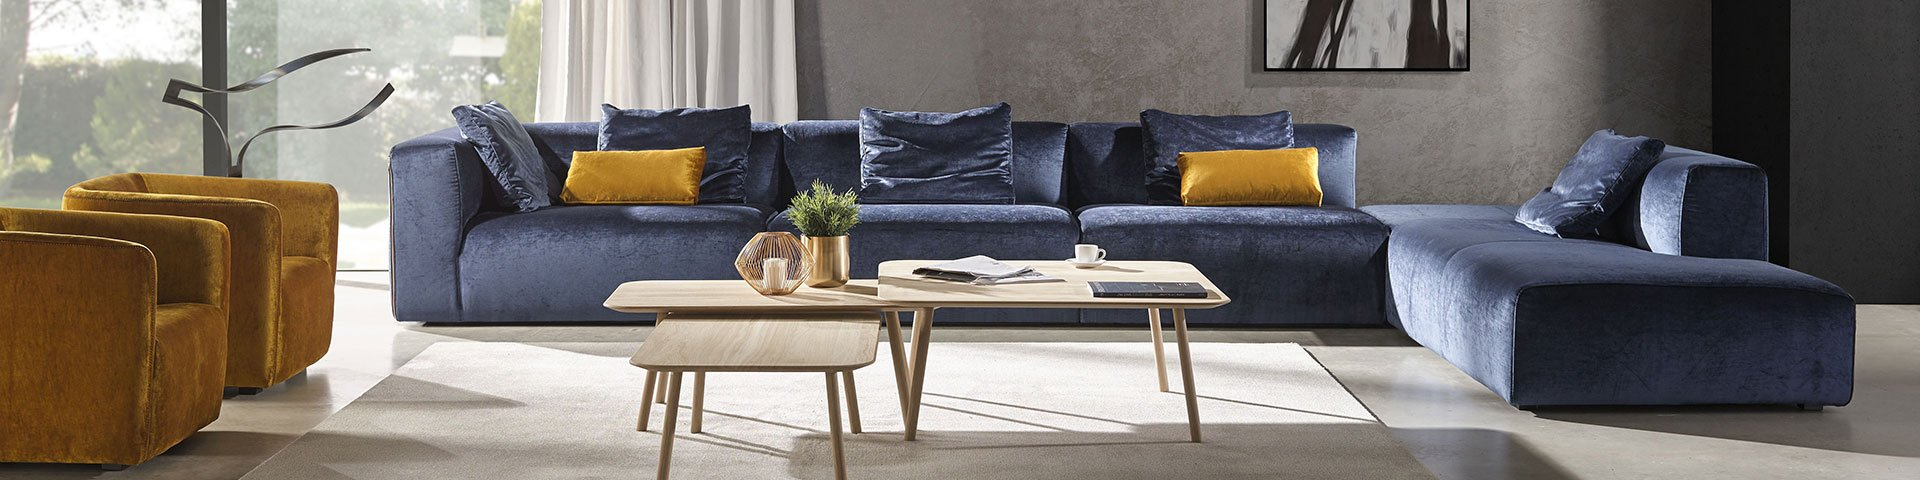 Sofas at Abode Furniture